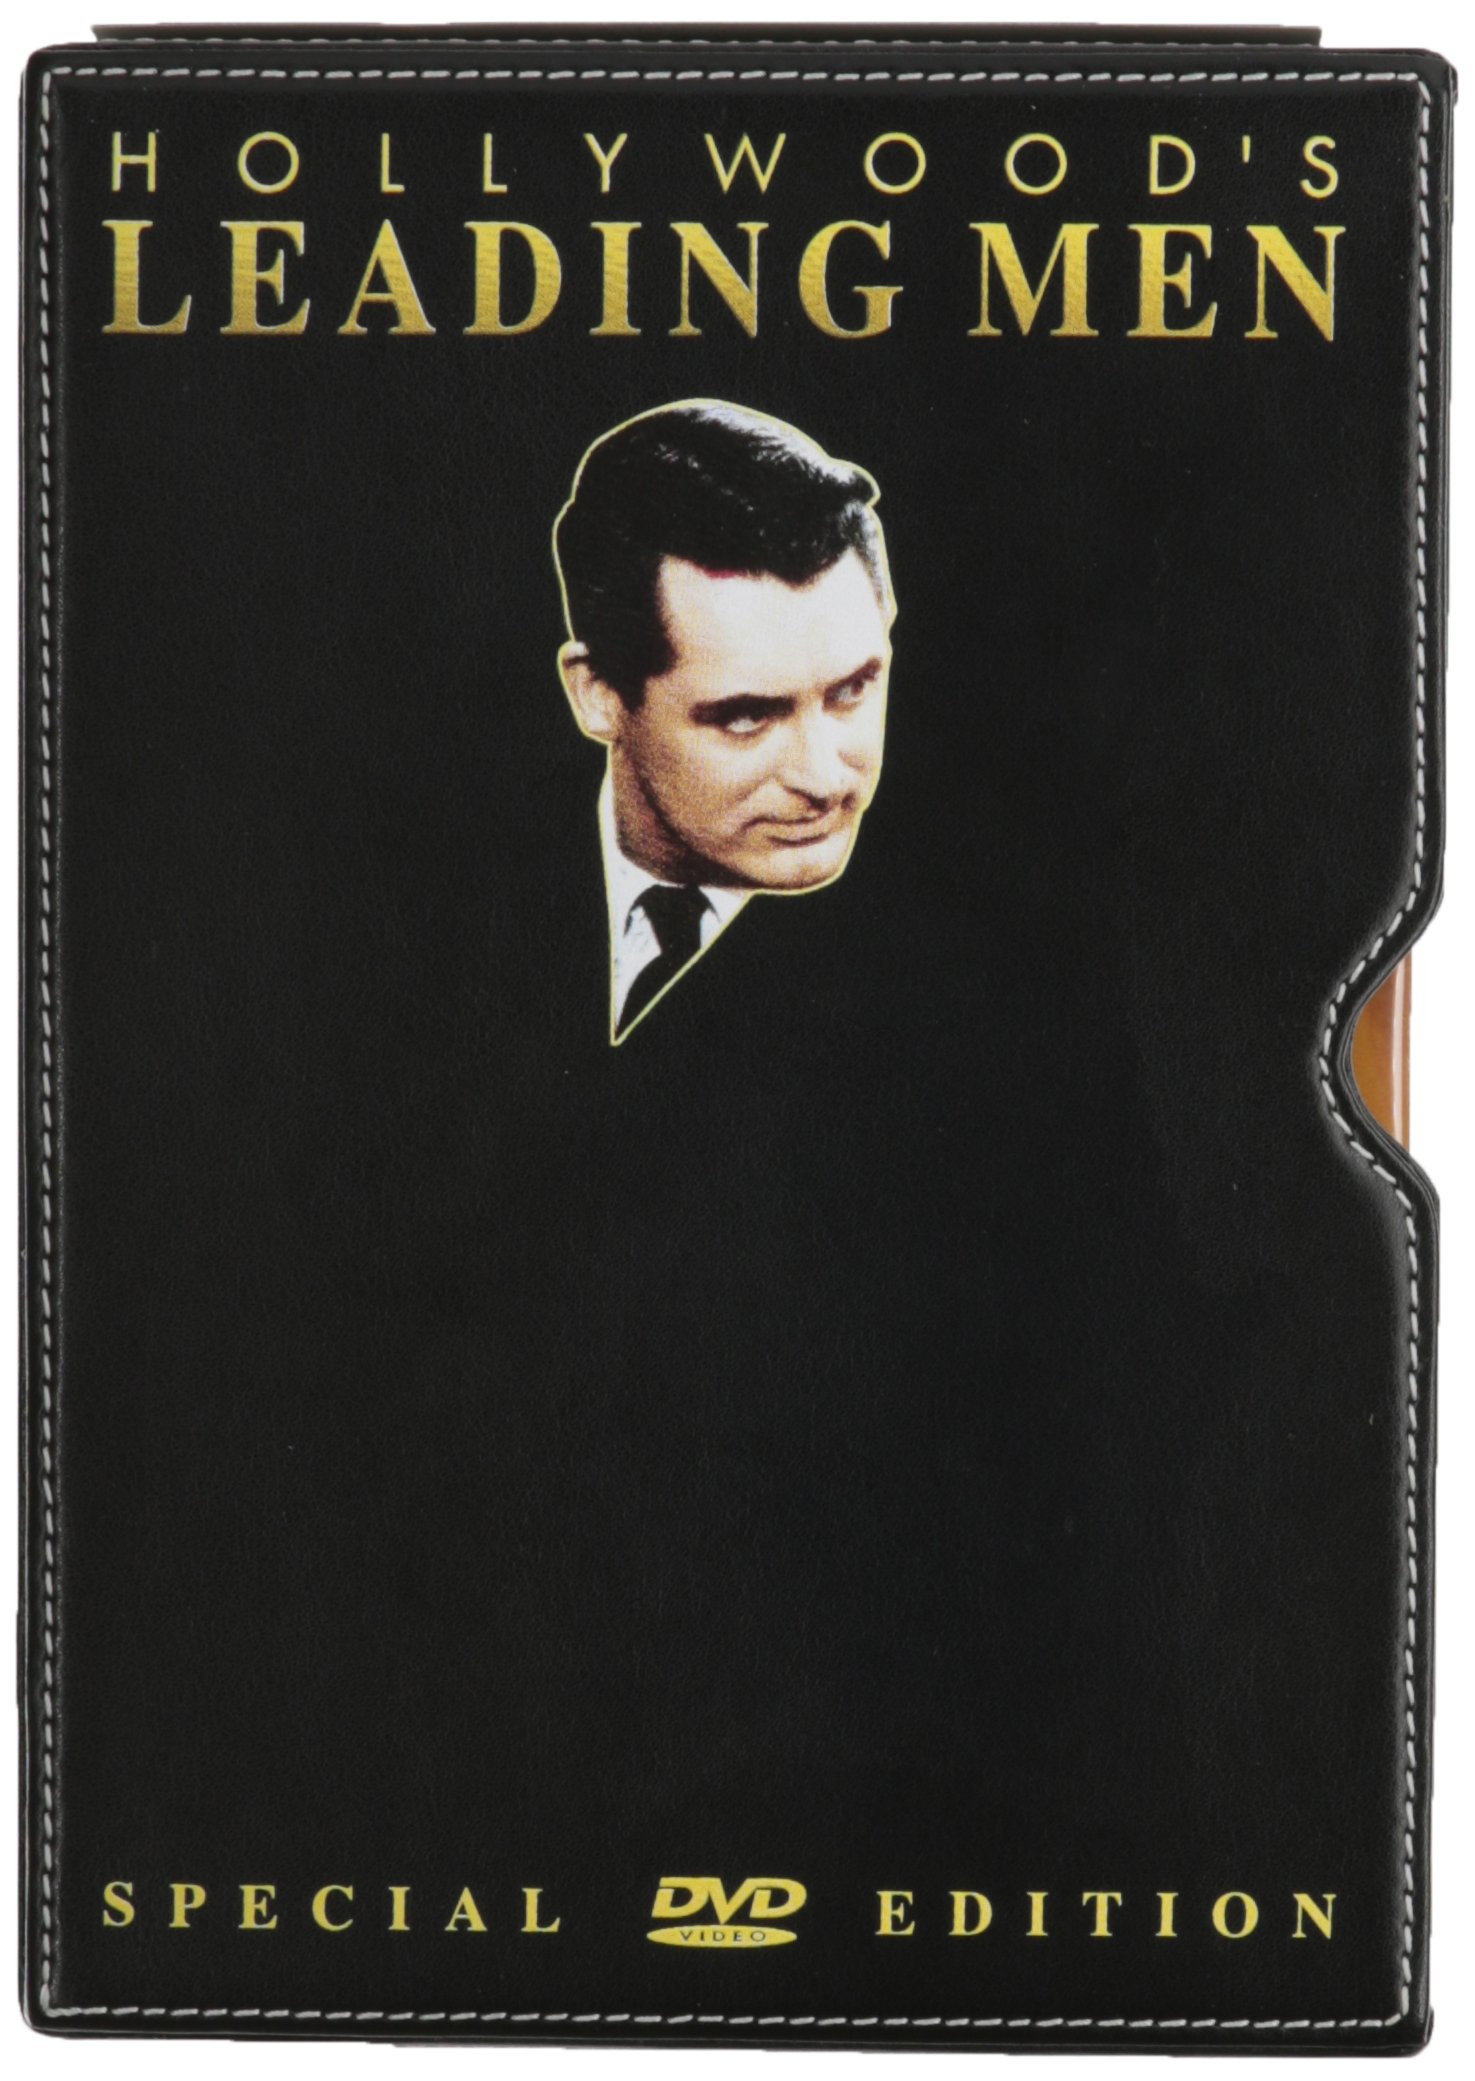 Hollywood's Leading Men Collection - 4 Movie Pack